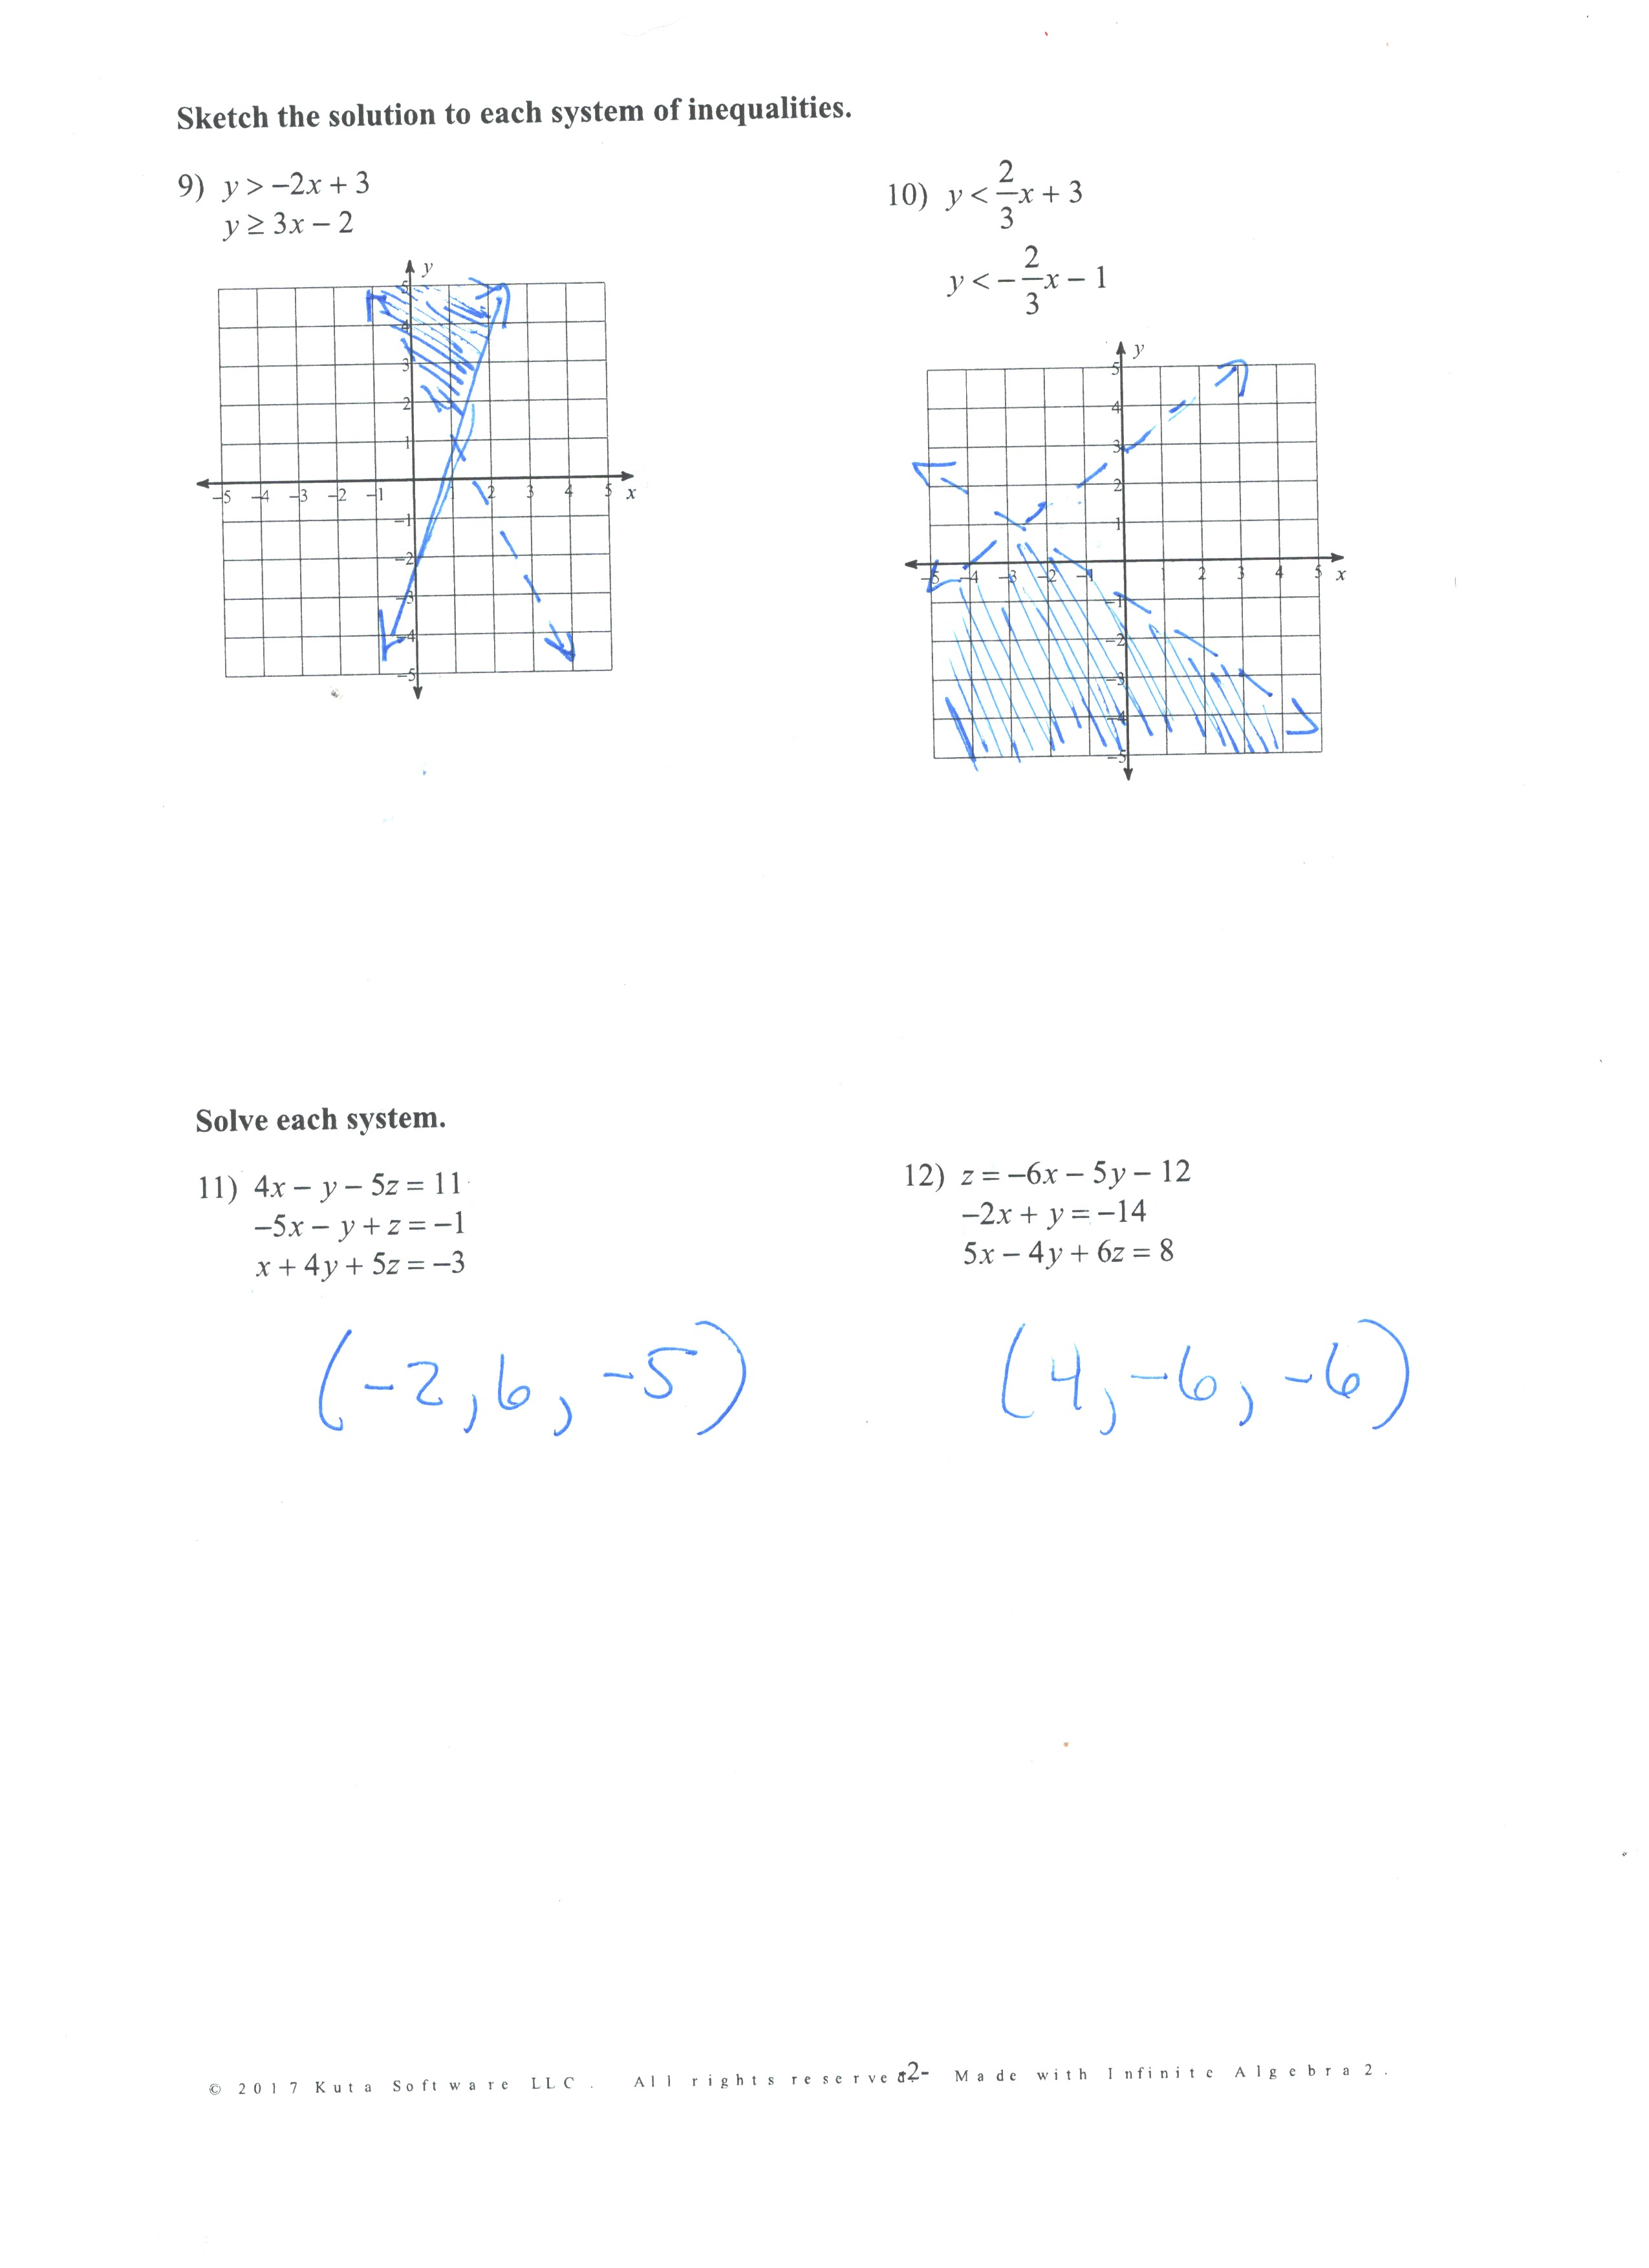 27 Classwork: 3-5 Practice Form K 22 Classwork: Graphing Linear  Inequalities (Kuta) Side 1; Side 2 20 Homework: Solving Linear Systems  (Kuta) Side 1